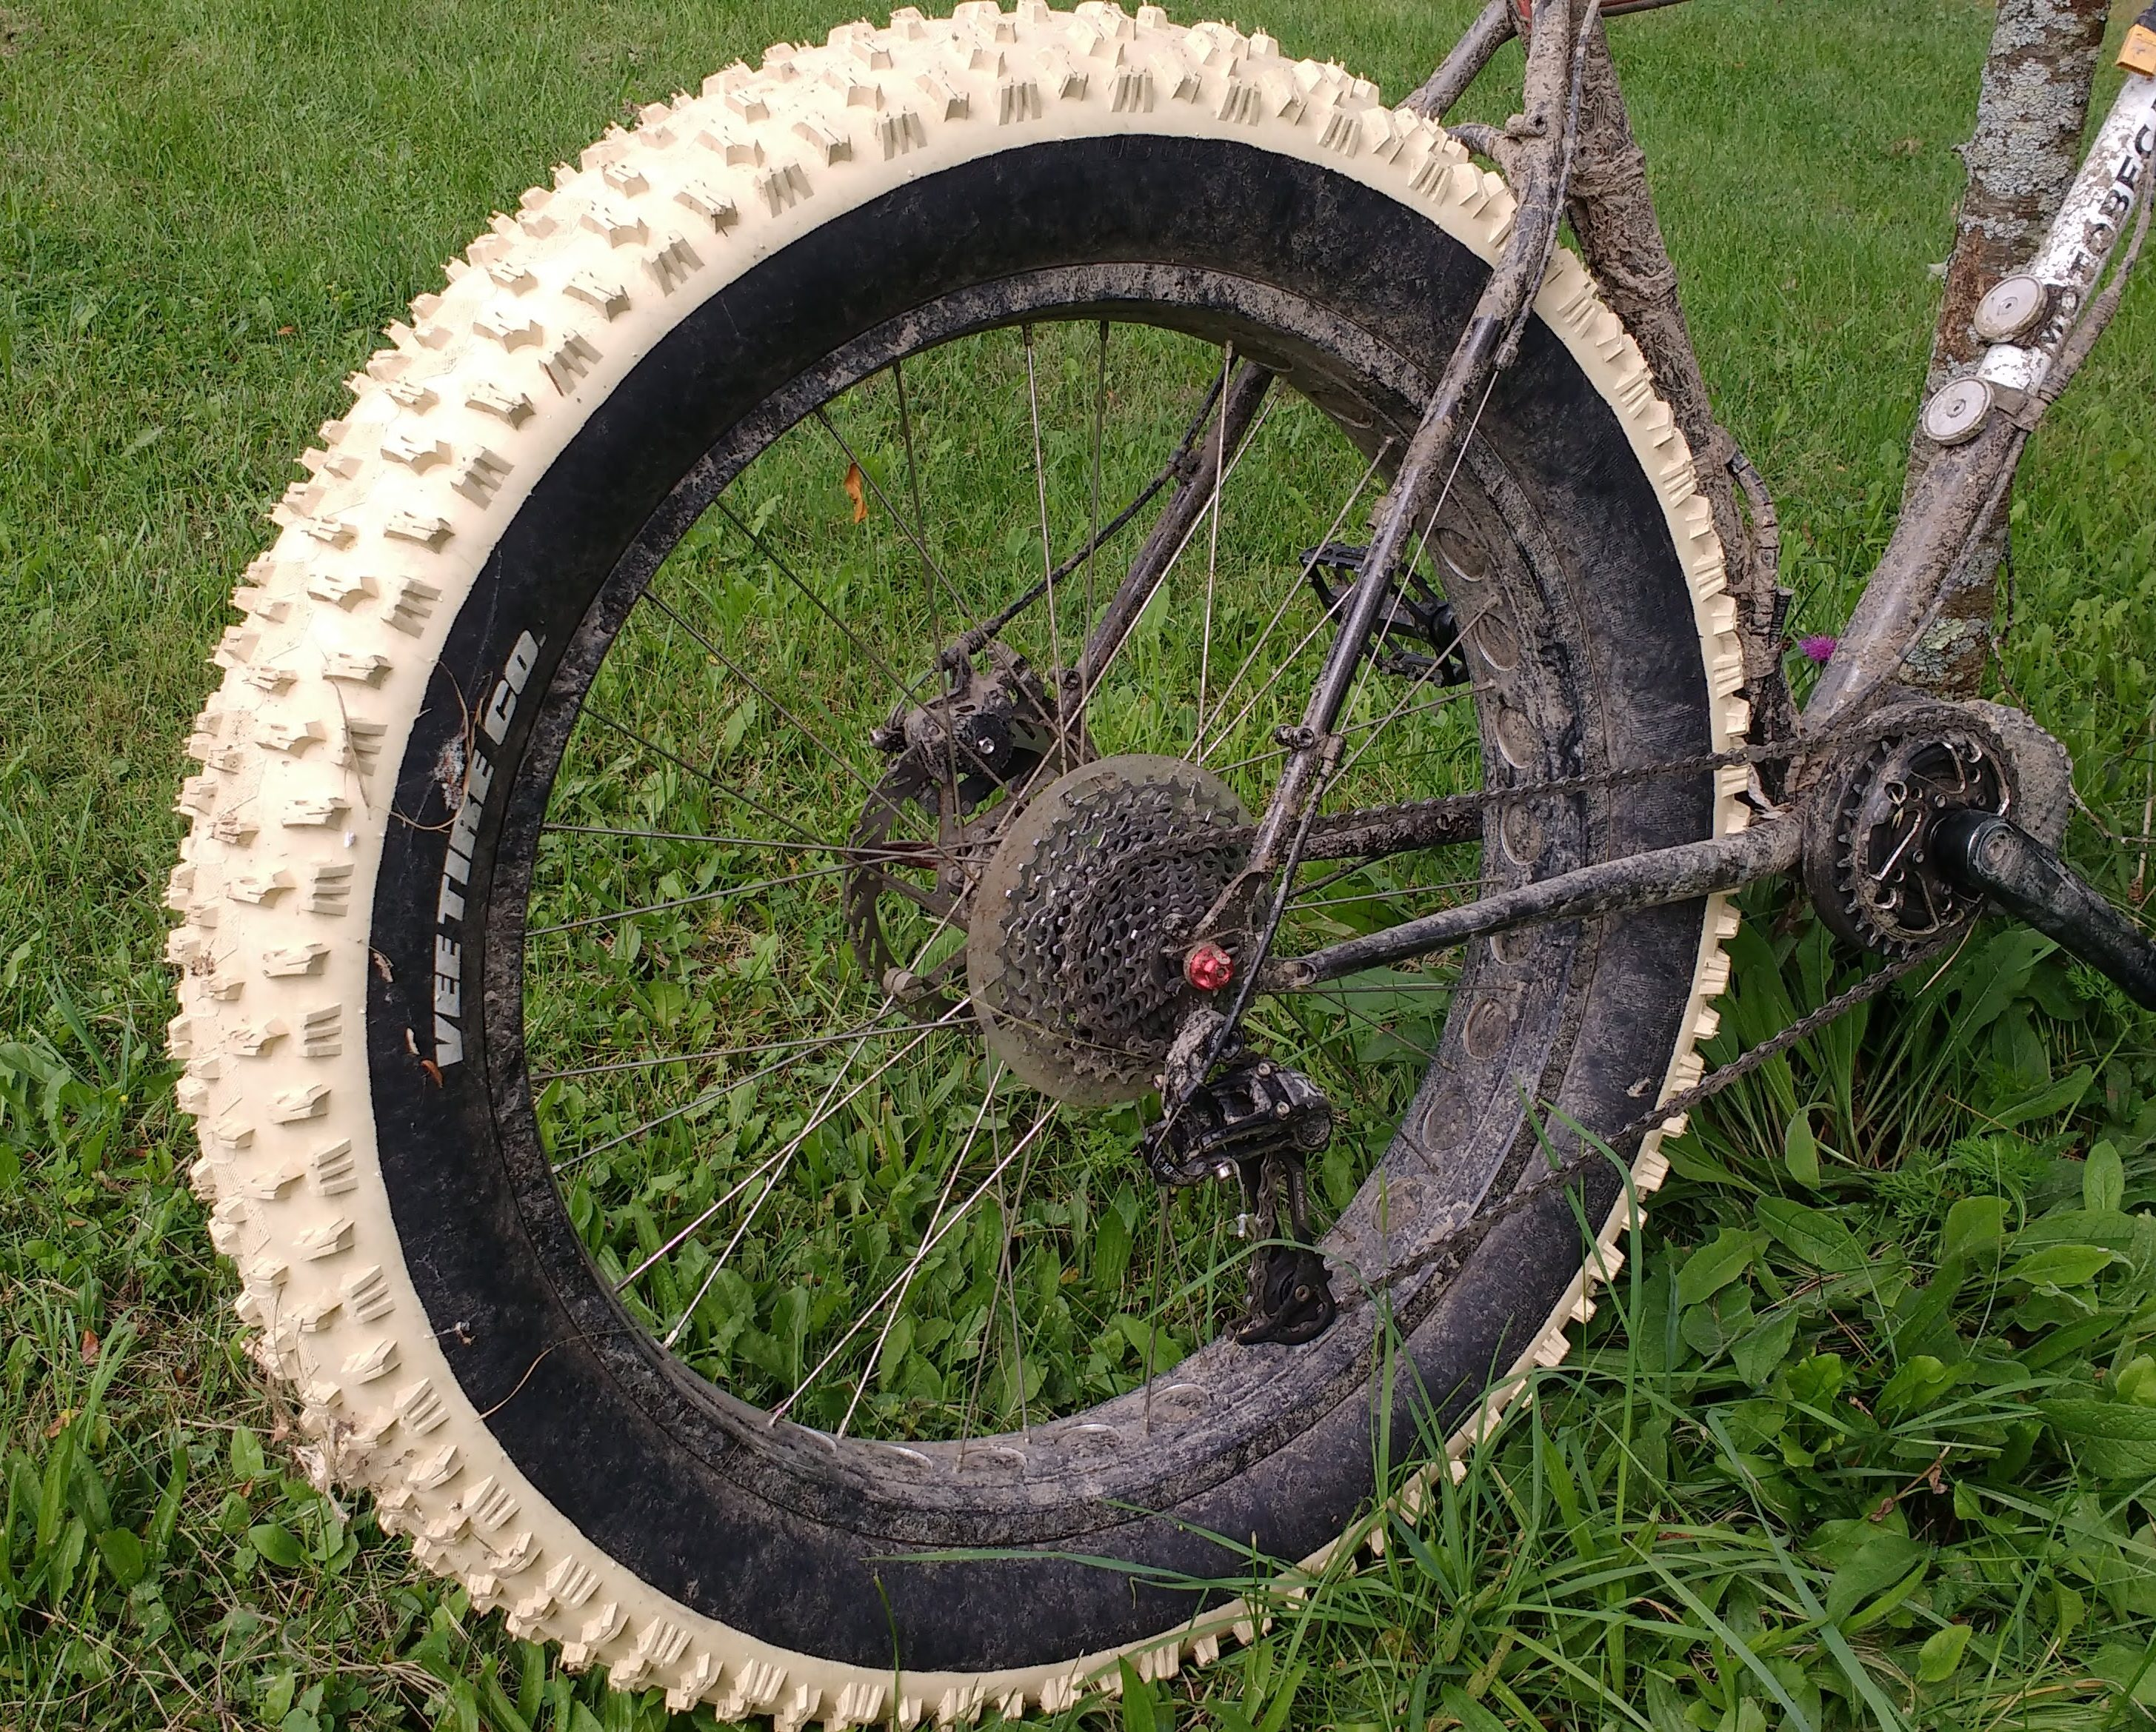 5a54035b02f Get Skunked : PSC vs Silica Rubber Fat Bike Tires | ElectricBike ...